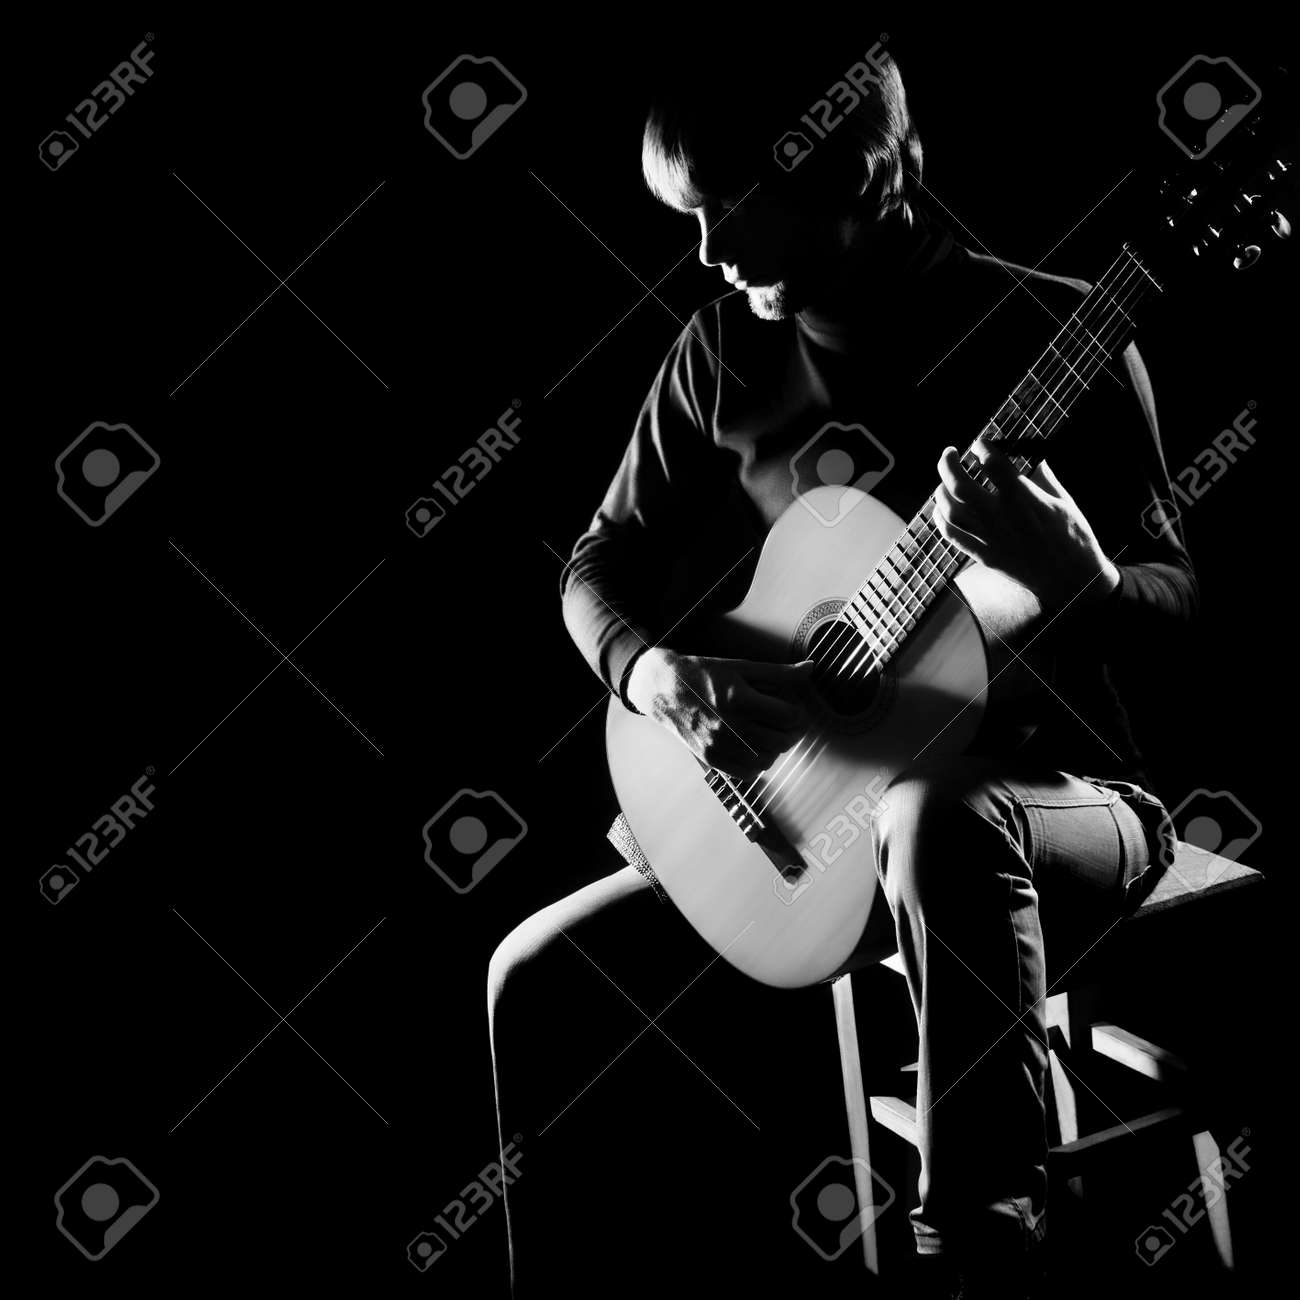 Acoustic guitar player guitarist  Classical guitar musical instruments concert playing in darkness Standard-Bild - 26131333